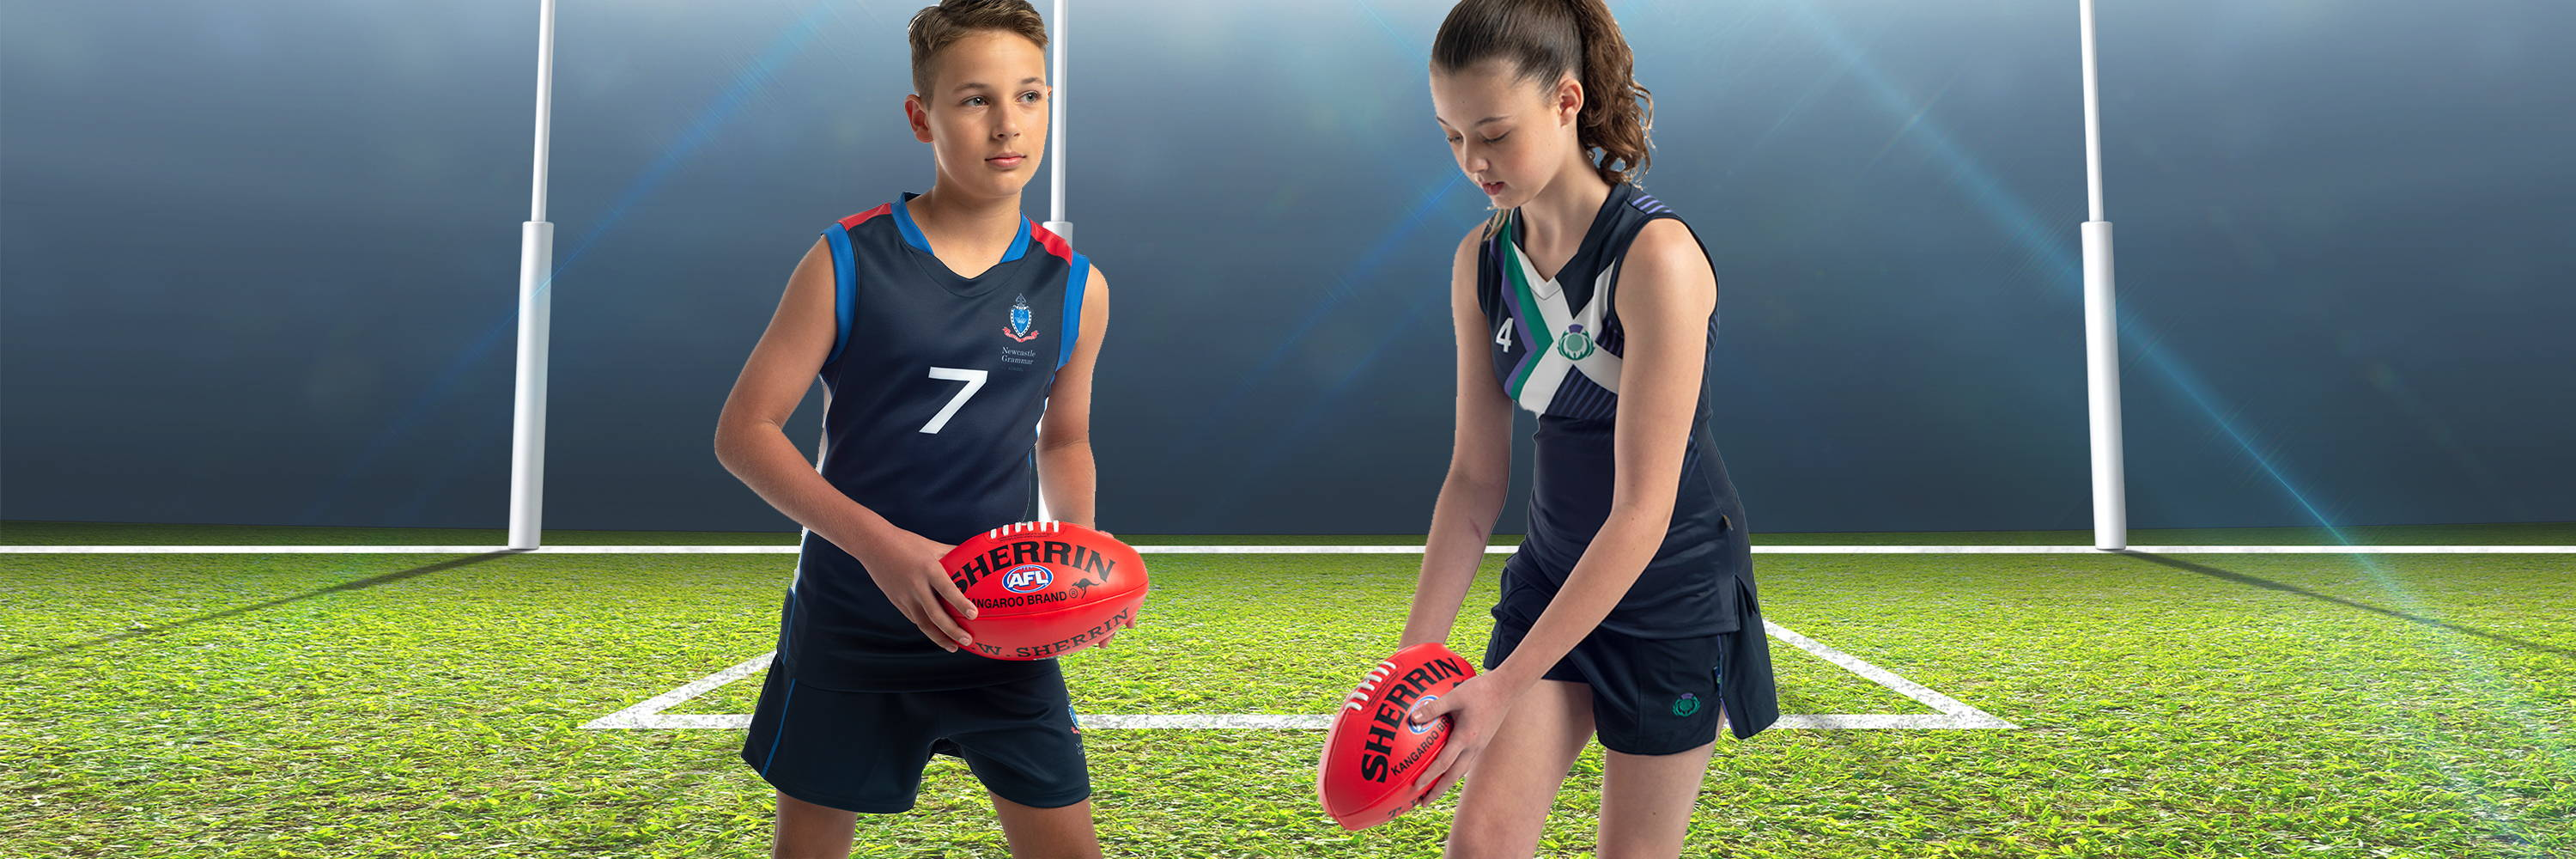 Valour Sport produce premium sublimated AFL football gear designed exclusively for your team